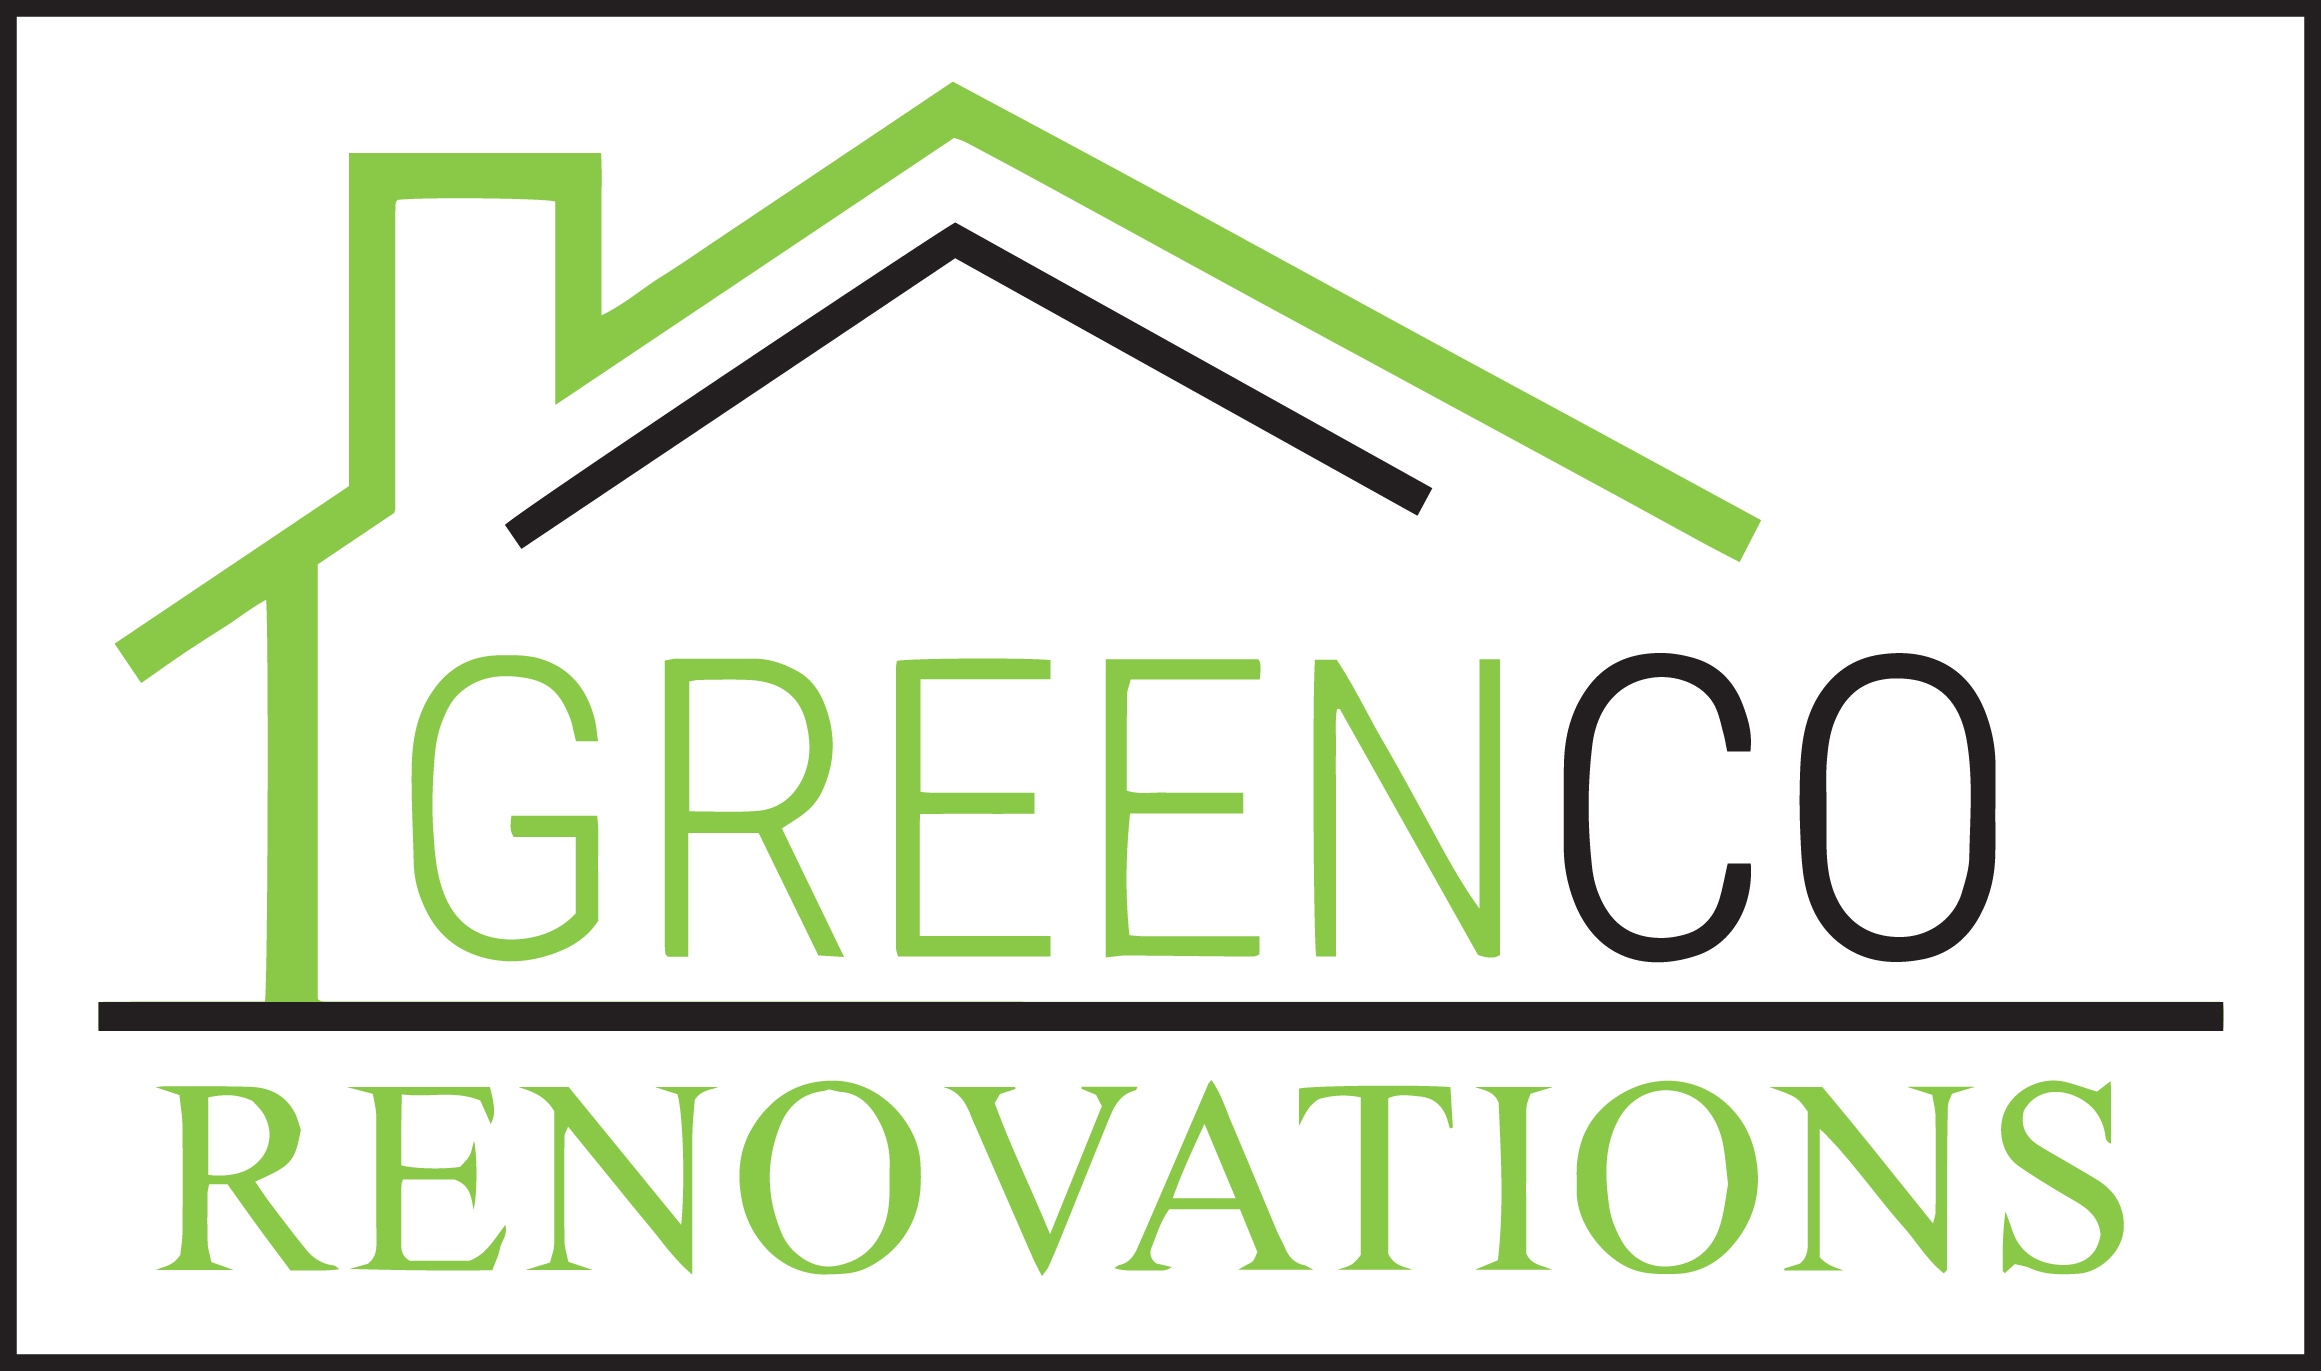 Greenco-Renovations-logo